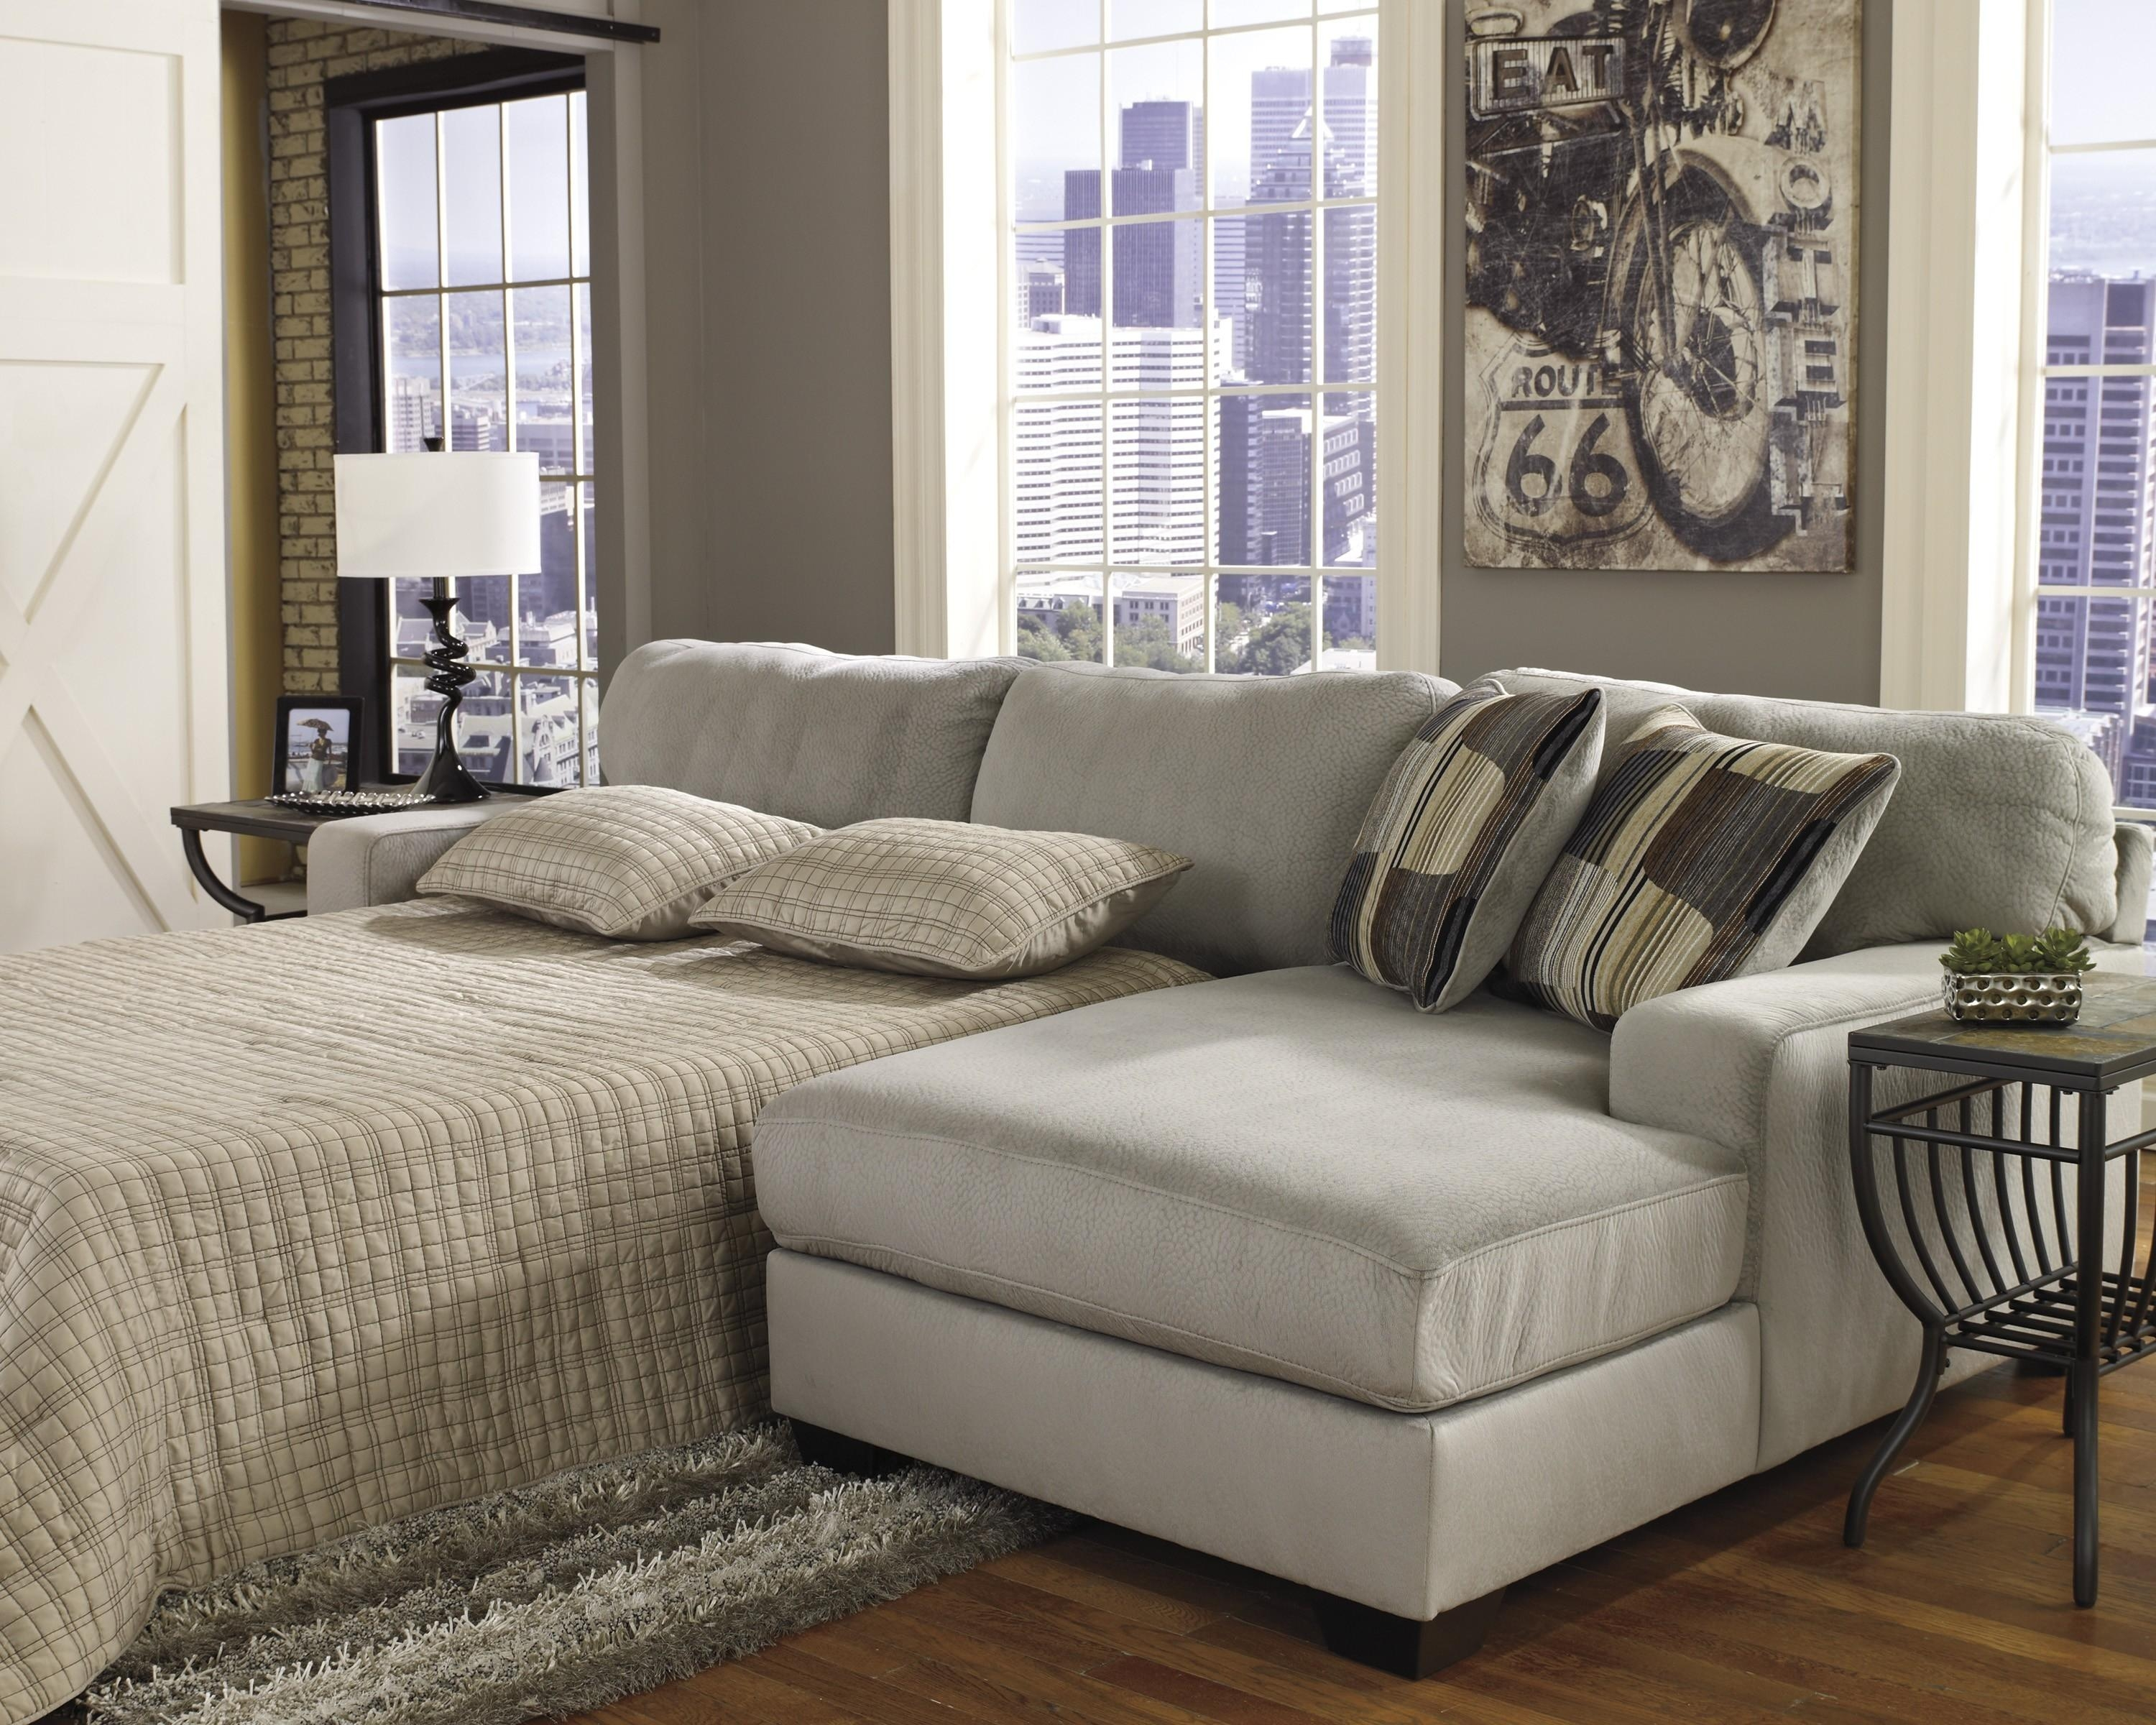 Cheap Leather Sectional Sleeper Sofa | Tehranmix Decoration For Sectional With Recliner And Sleeper (Image 4 of 20)